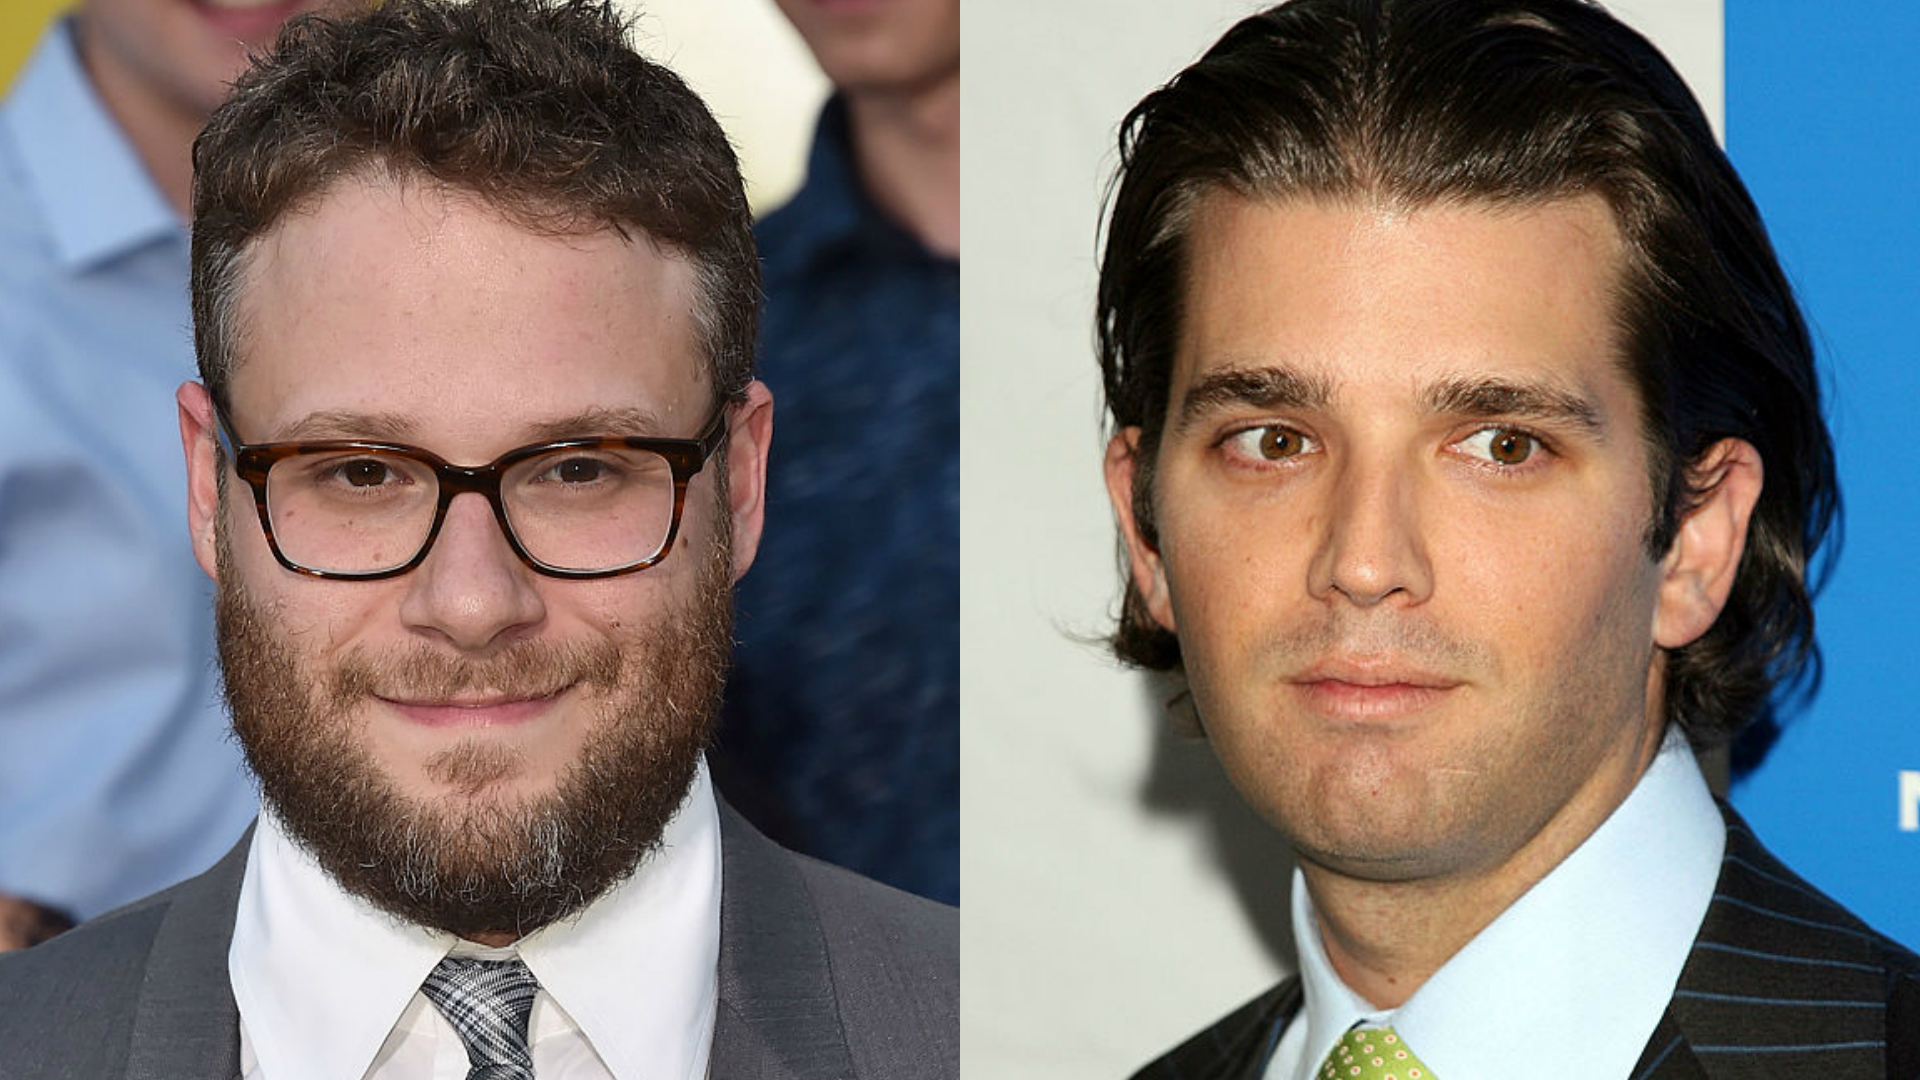 Seth Rogen vs Donald Trump Jr